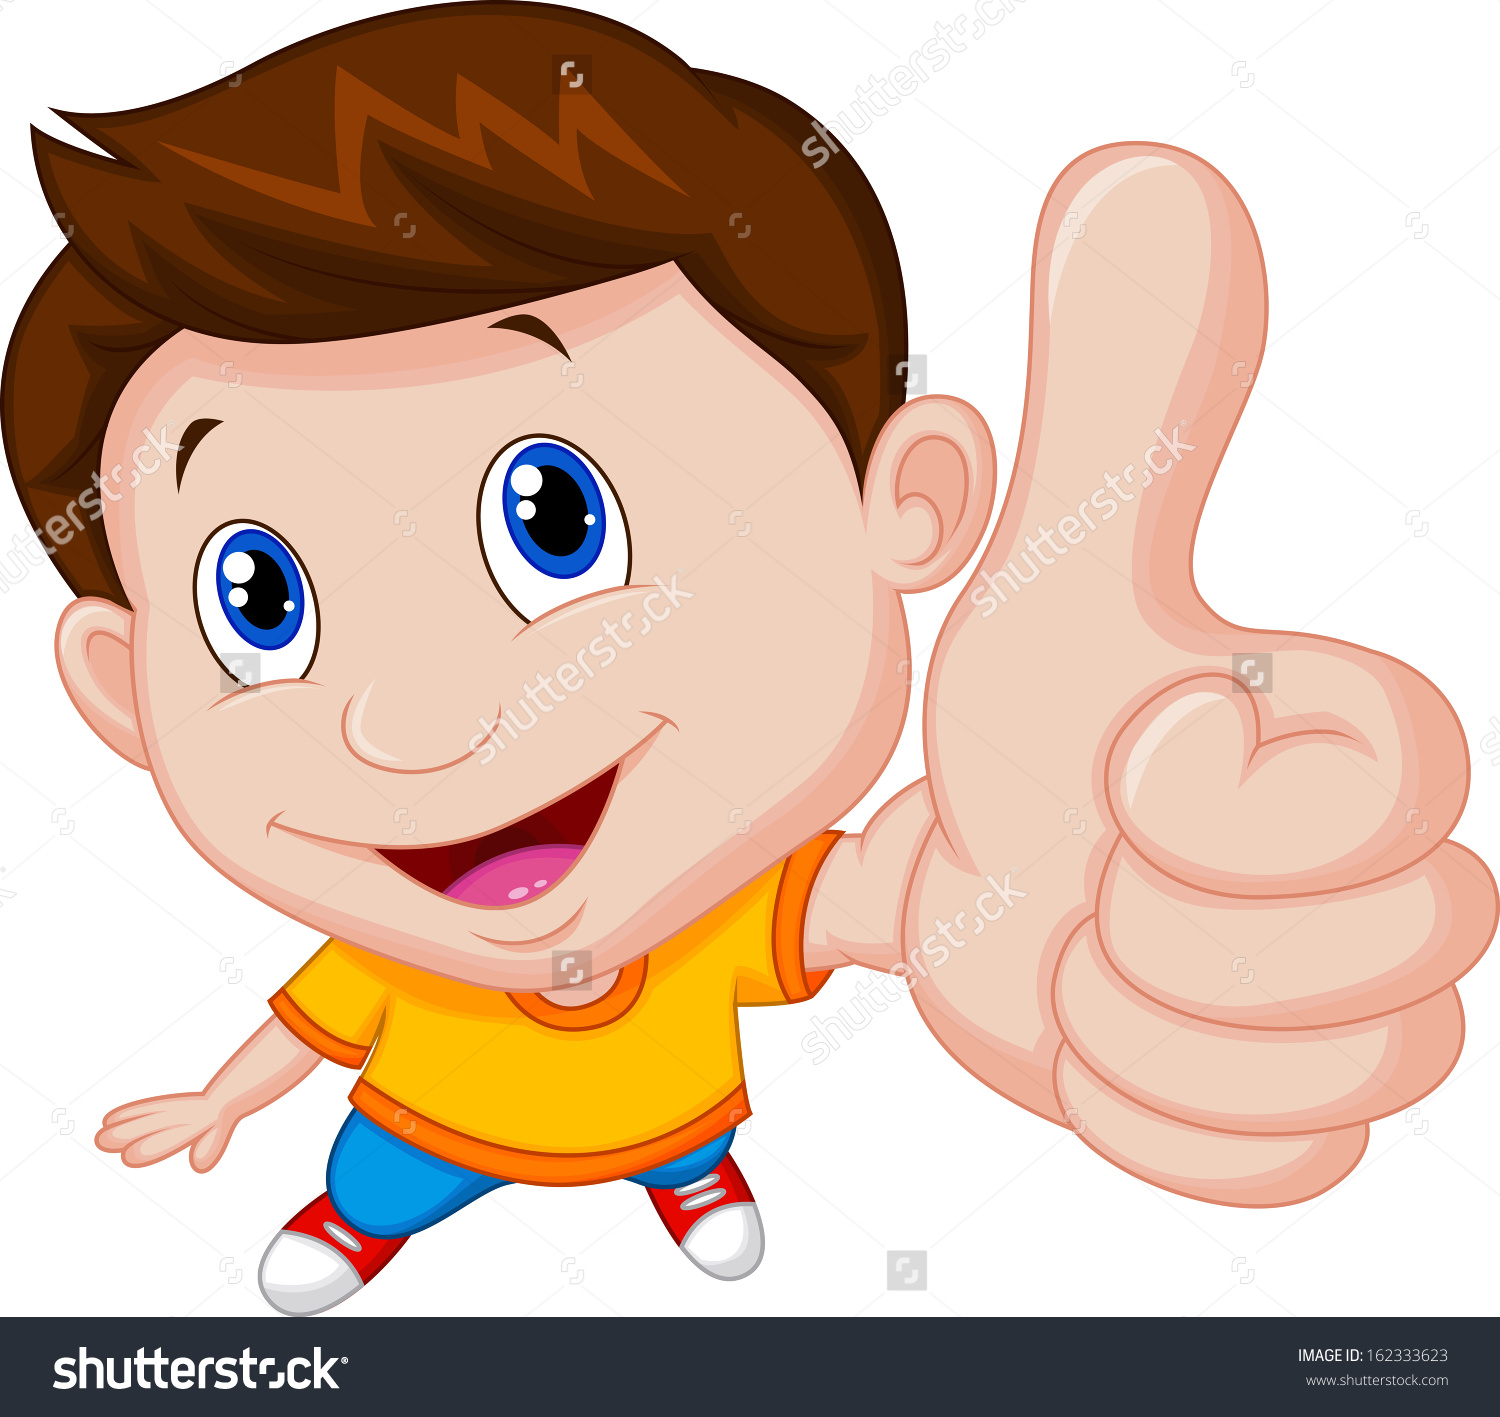 Clipartfest thumbsup sign save. Baby girl thumbs up clipart